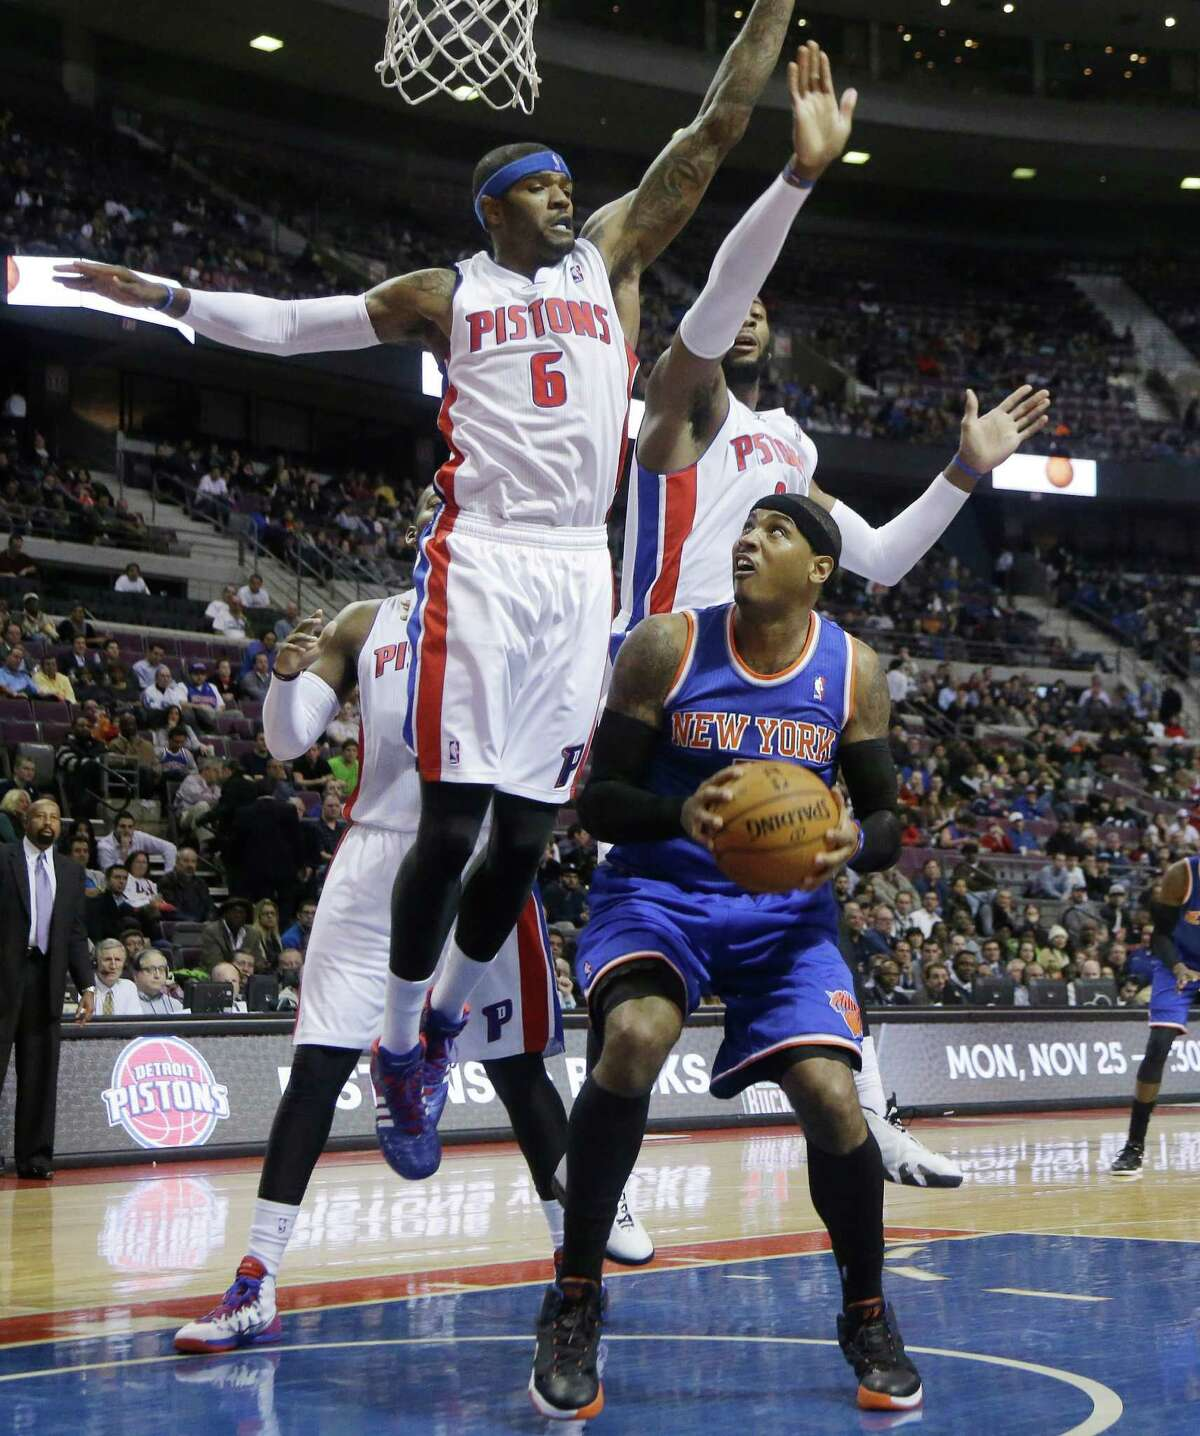 New York Knicks forward Carmelo Anthony (7) is blocked by Detroit Pistons forwards Josh Smith (6) and Greg Monroe, rear right, during the first half of an NBA basketball game in Auburn Hills, Mich., Tuesday, Nov. 19, 2013. (AP Photo/Carlos Osorio) ORG XMIT: MICO104